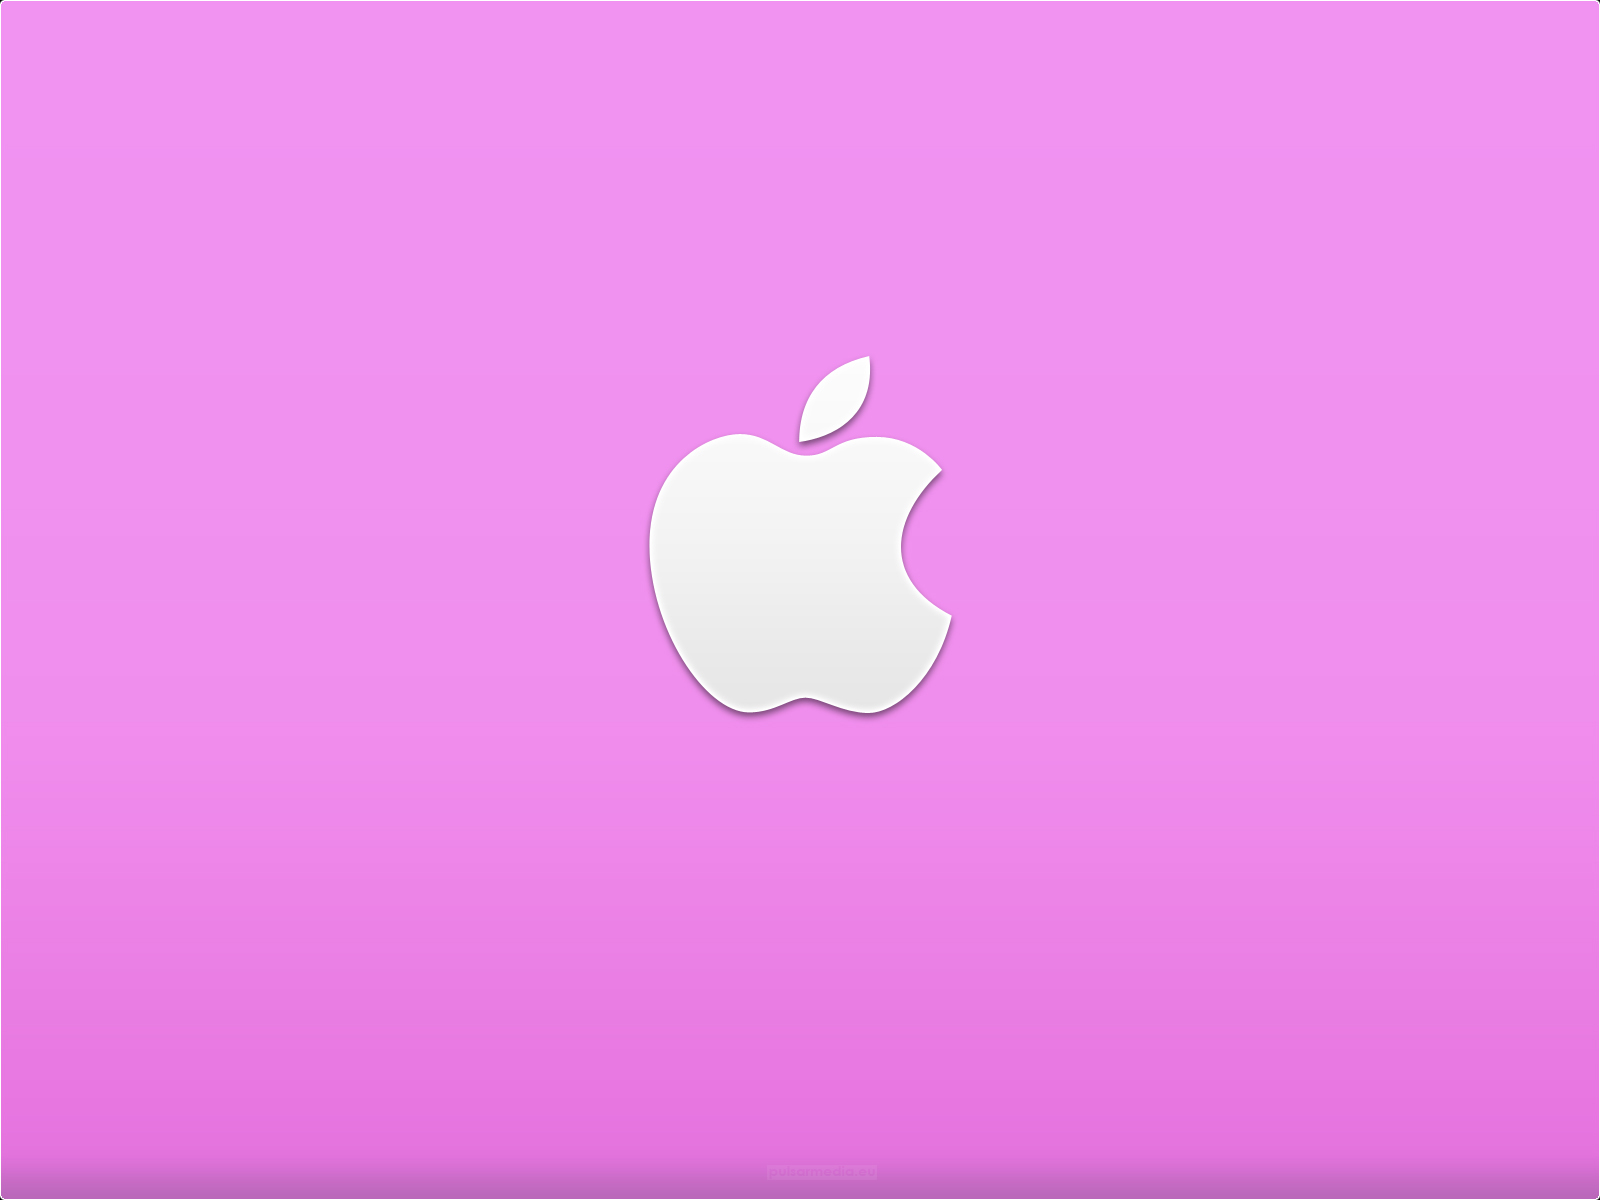 Black and White Wallpapers Pink Apple Logo Wallpaper 1600x1200